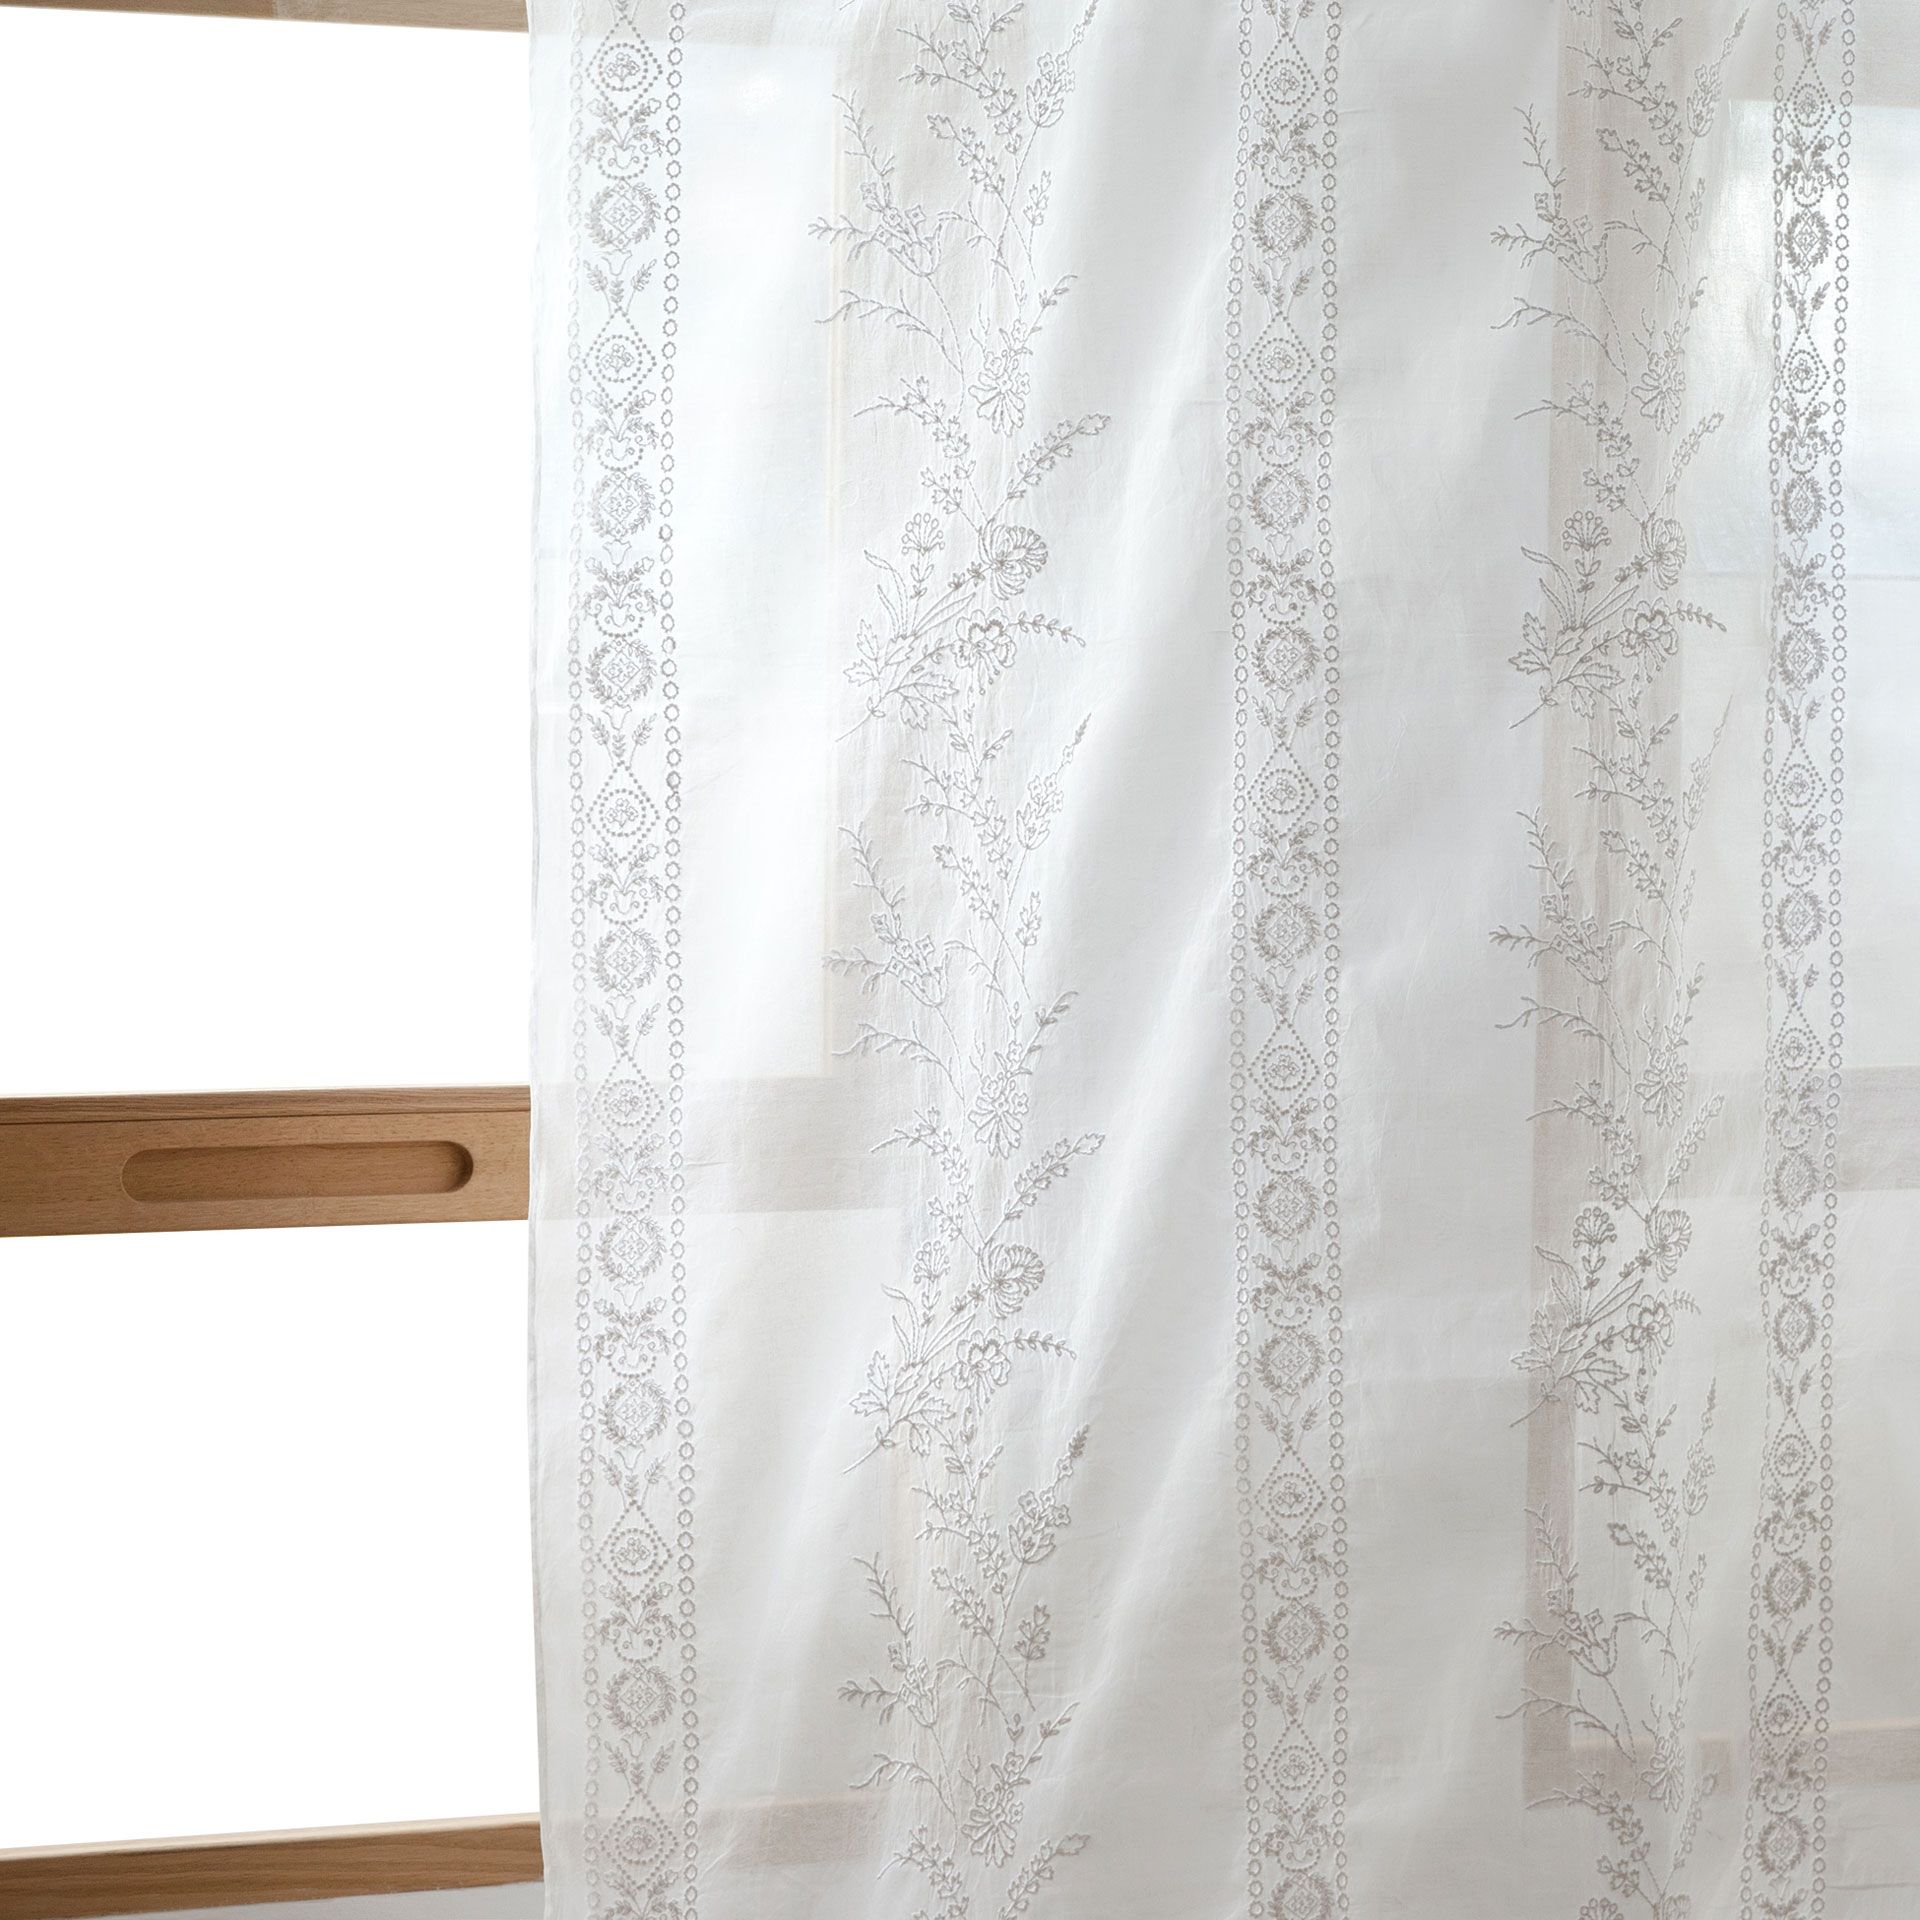 Cortina organza bordado cortinas decoraci n zara for Cortinas bebe zara home